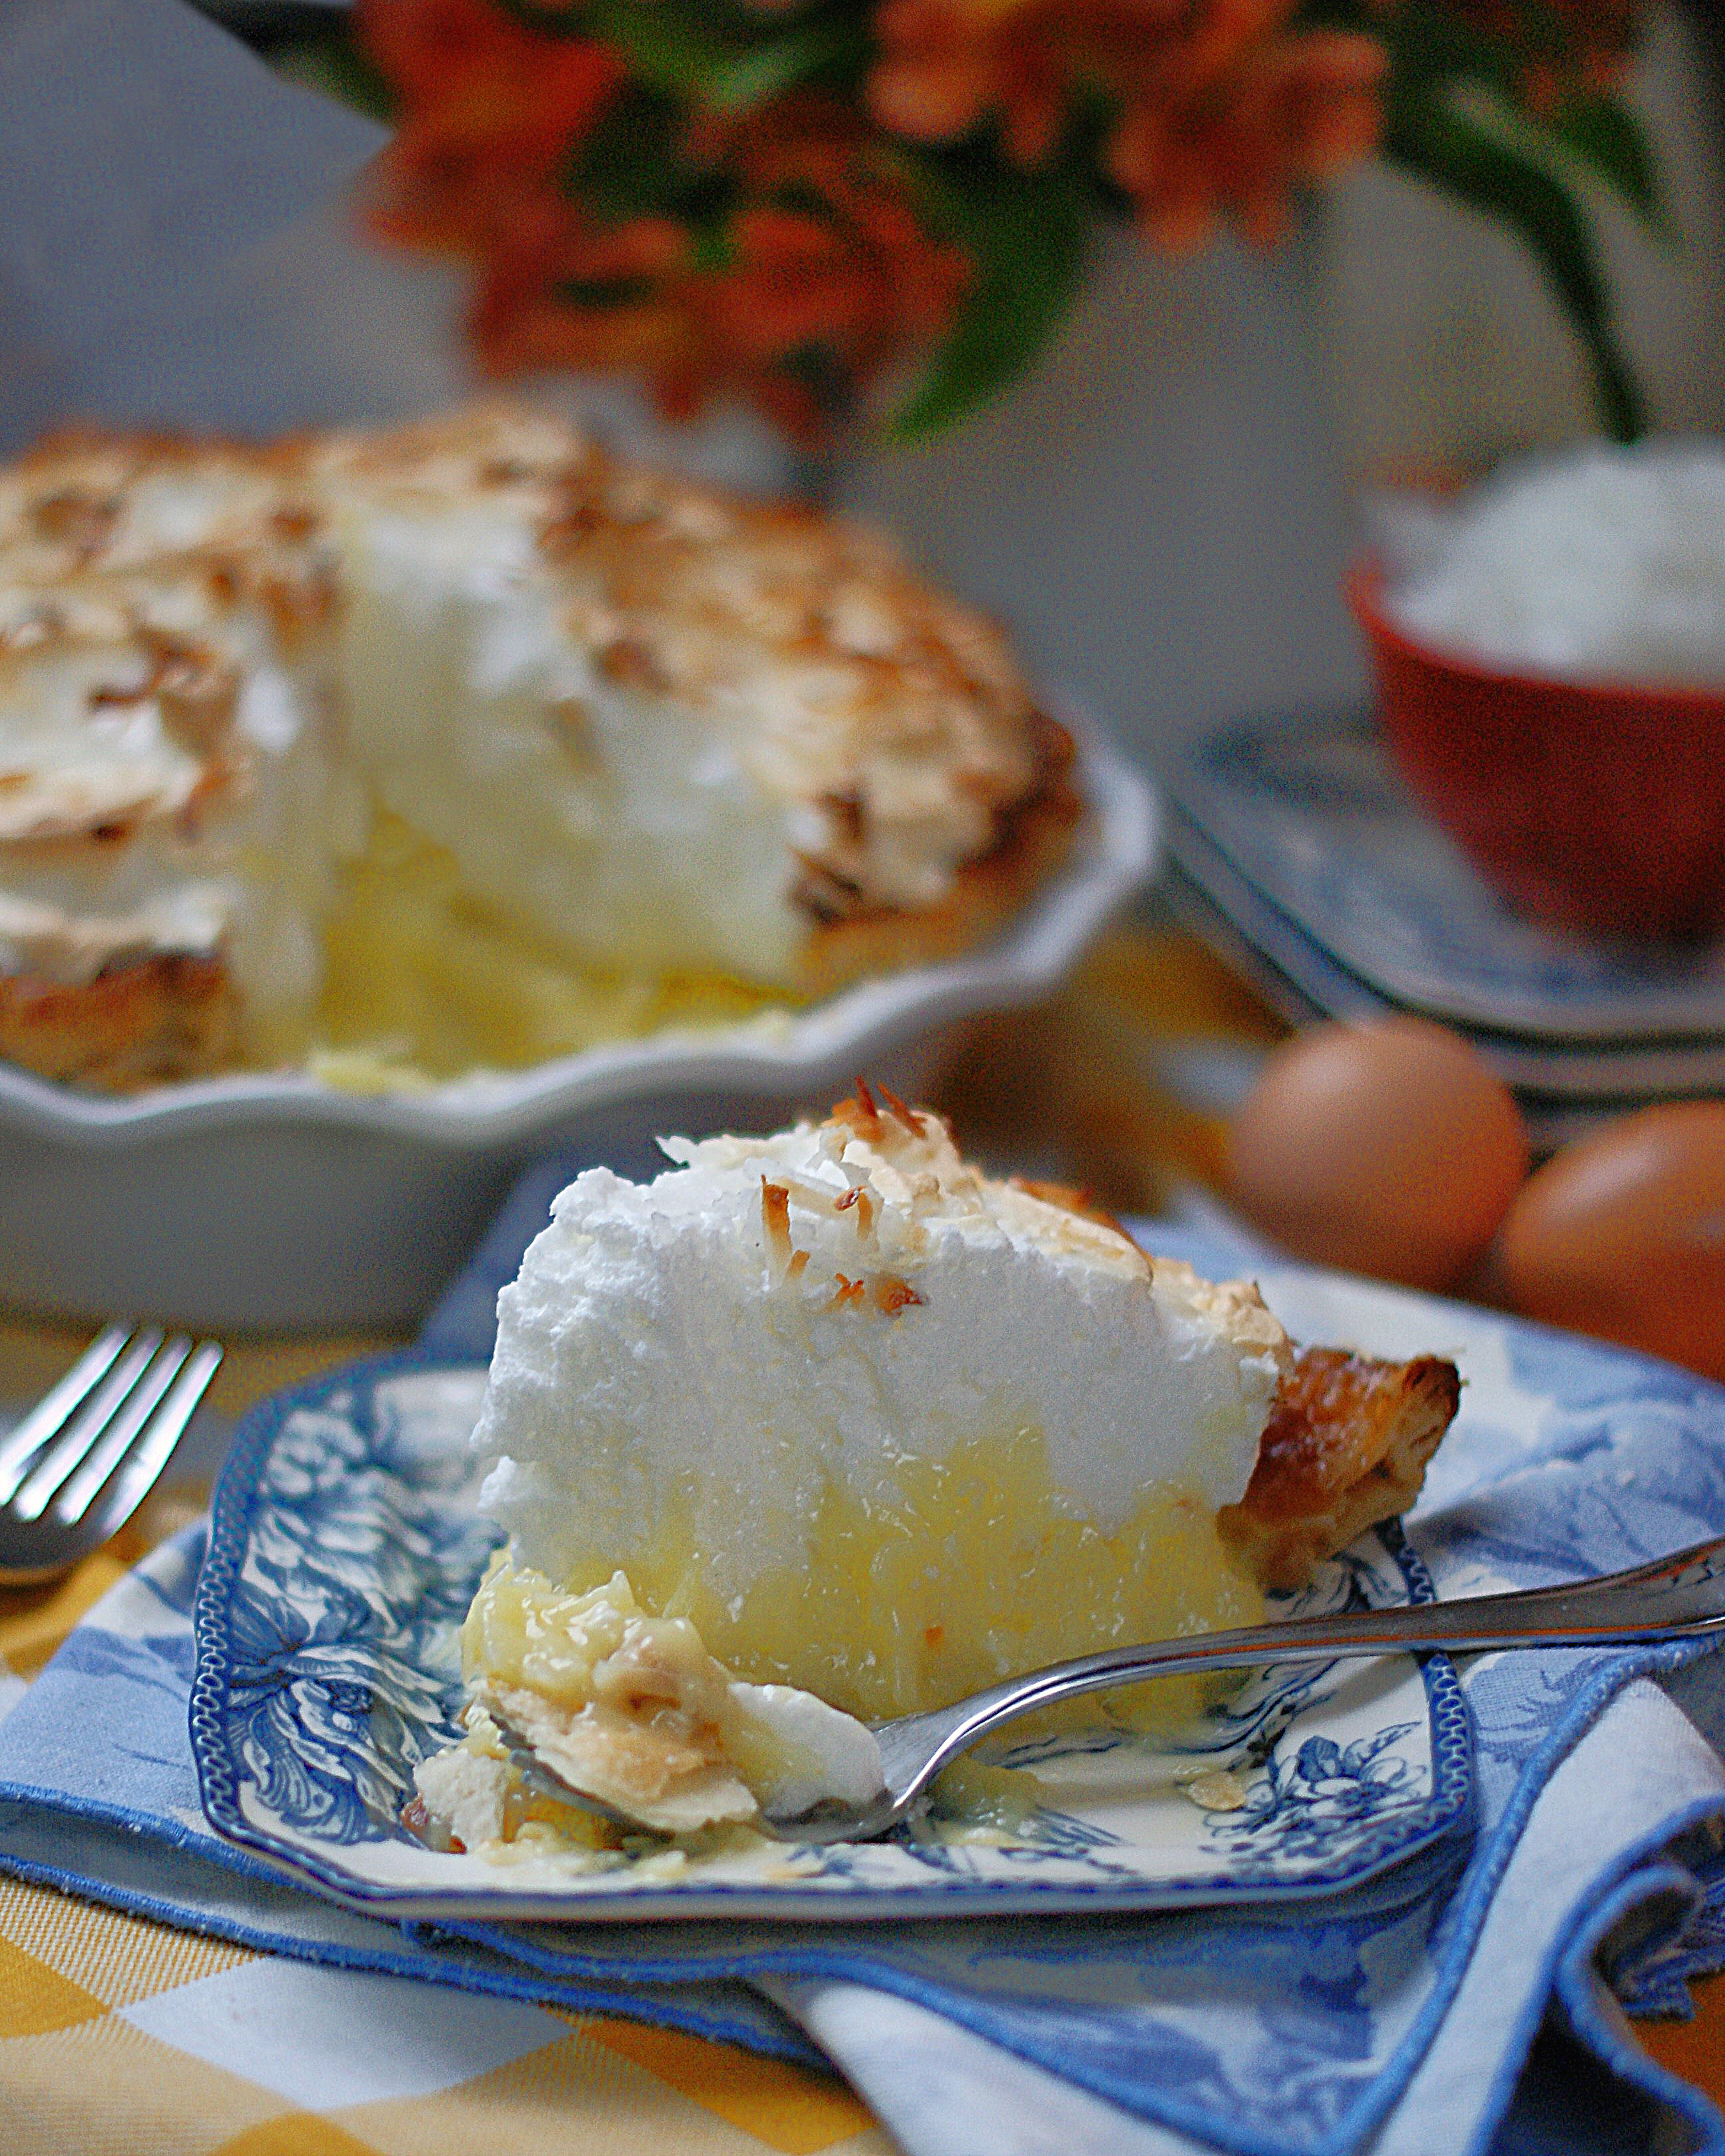 A slice of old fashioned coconut pie with meringue